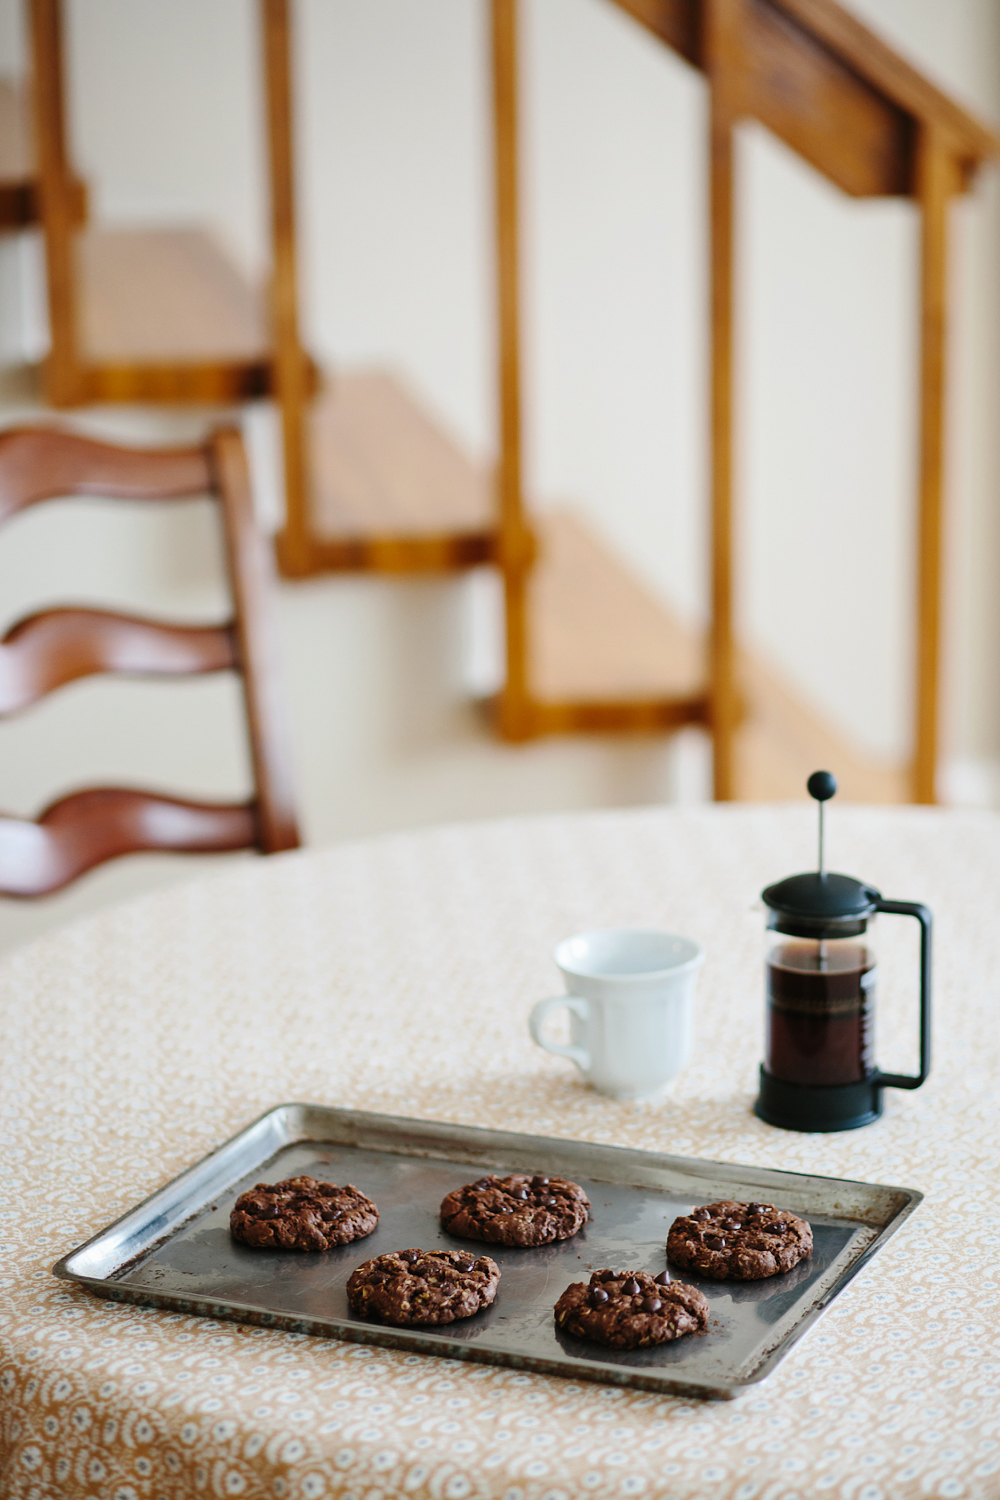 Teasim Chocolate Salty Oat Cookie Recipe